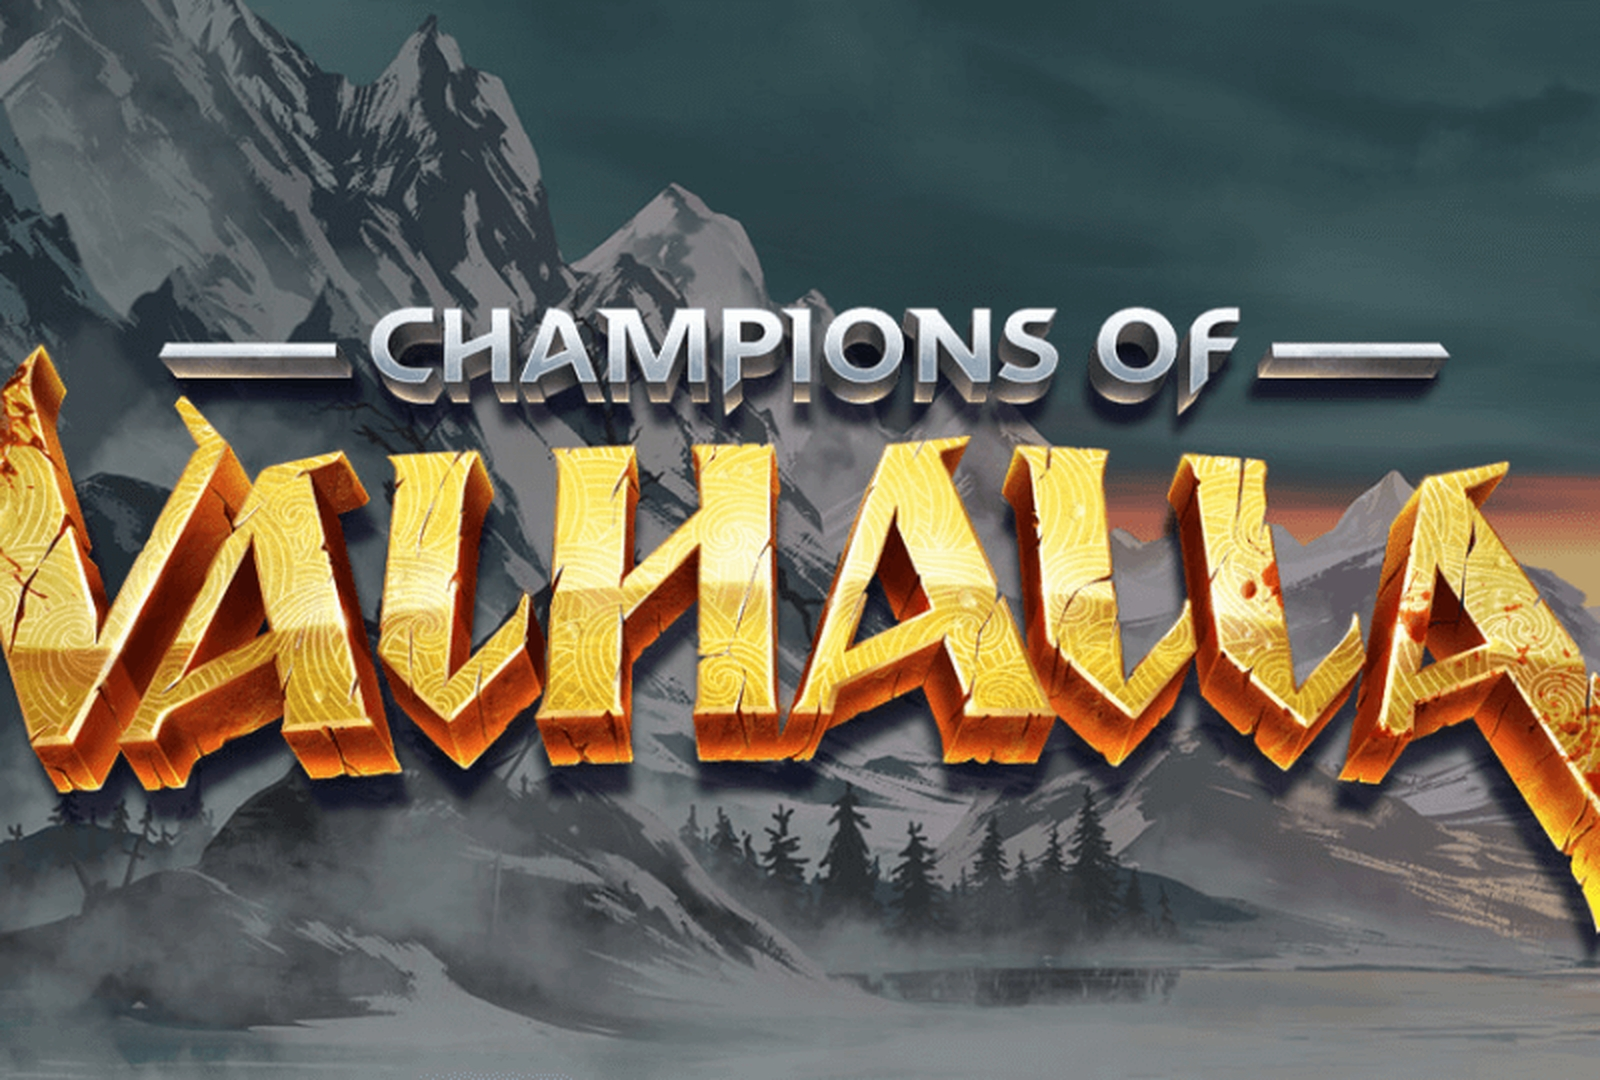 The Champions of Valhalla Jackpot Online Slot Demo Game by EYECON